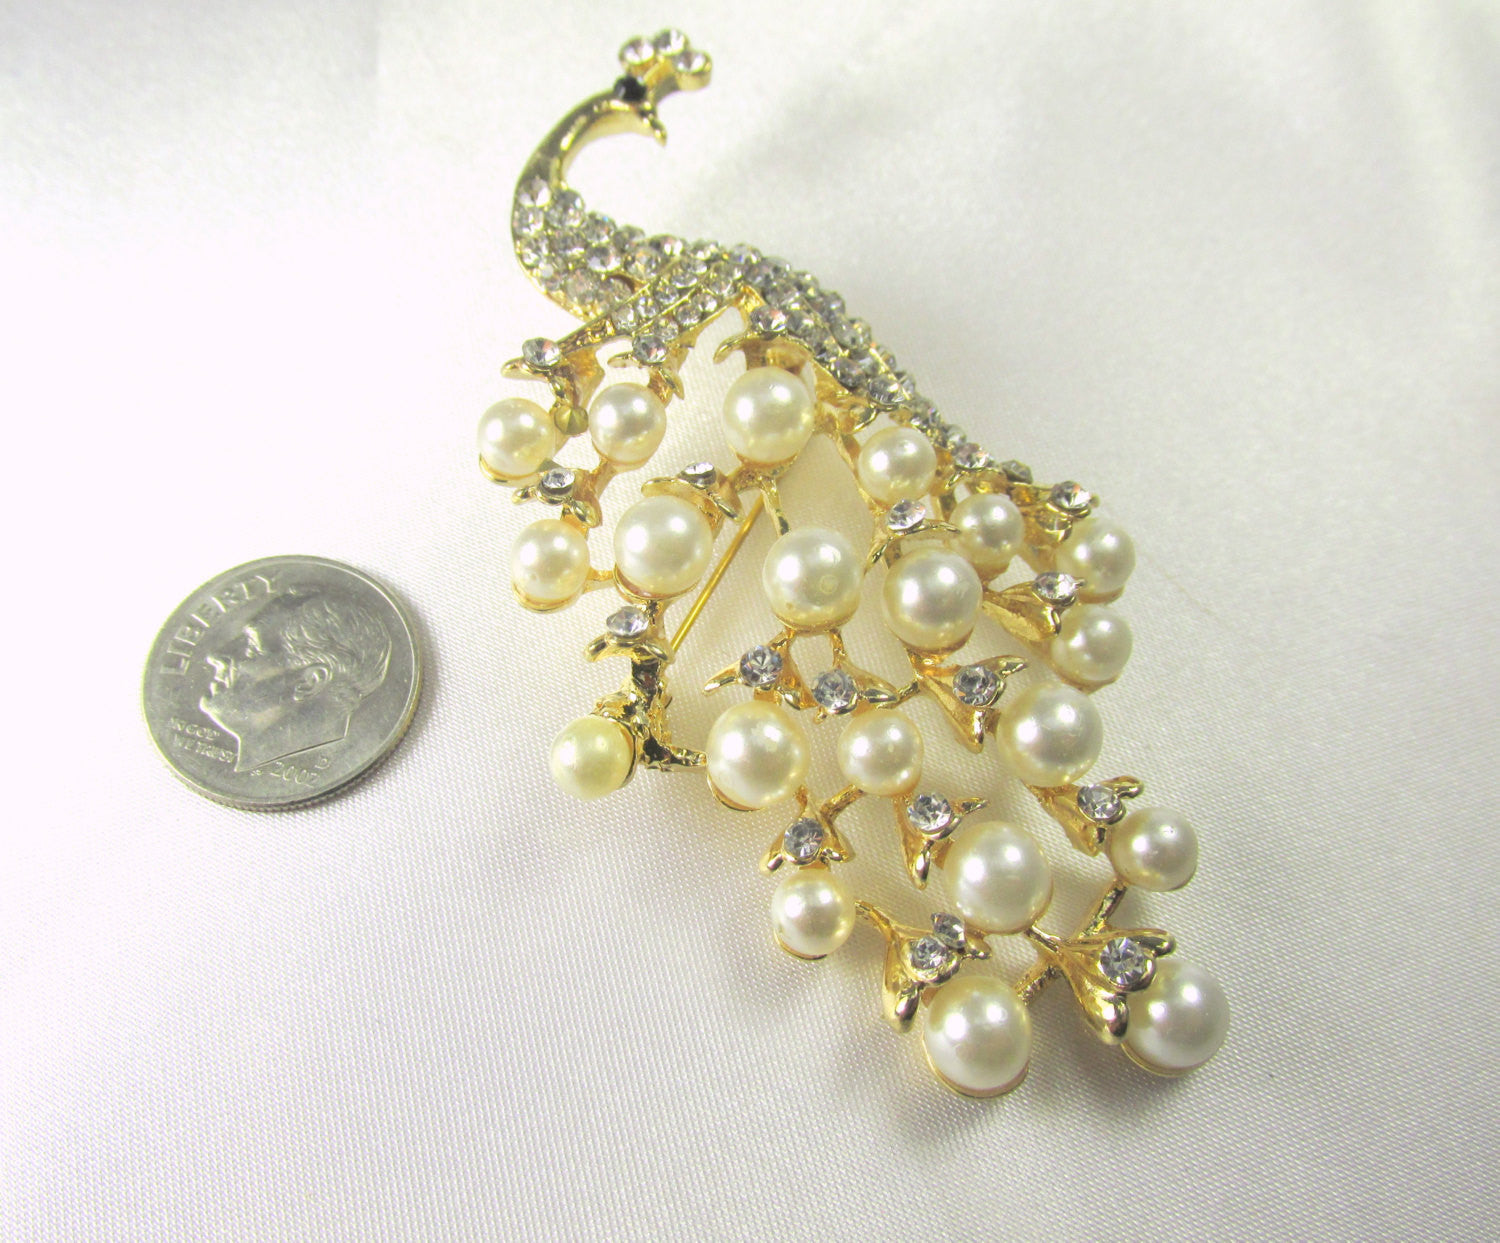 Peacock Brooch with White Pearls and Clear Crystals in Gold - Odyssey Cache - 4